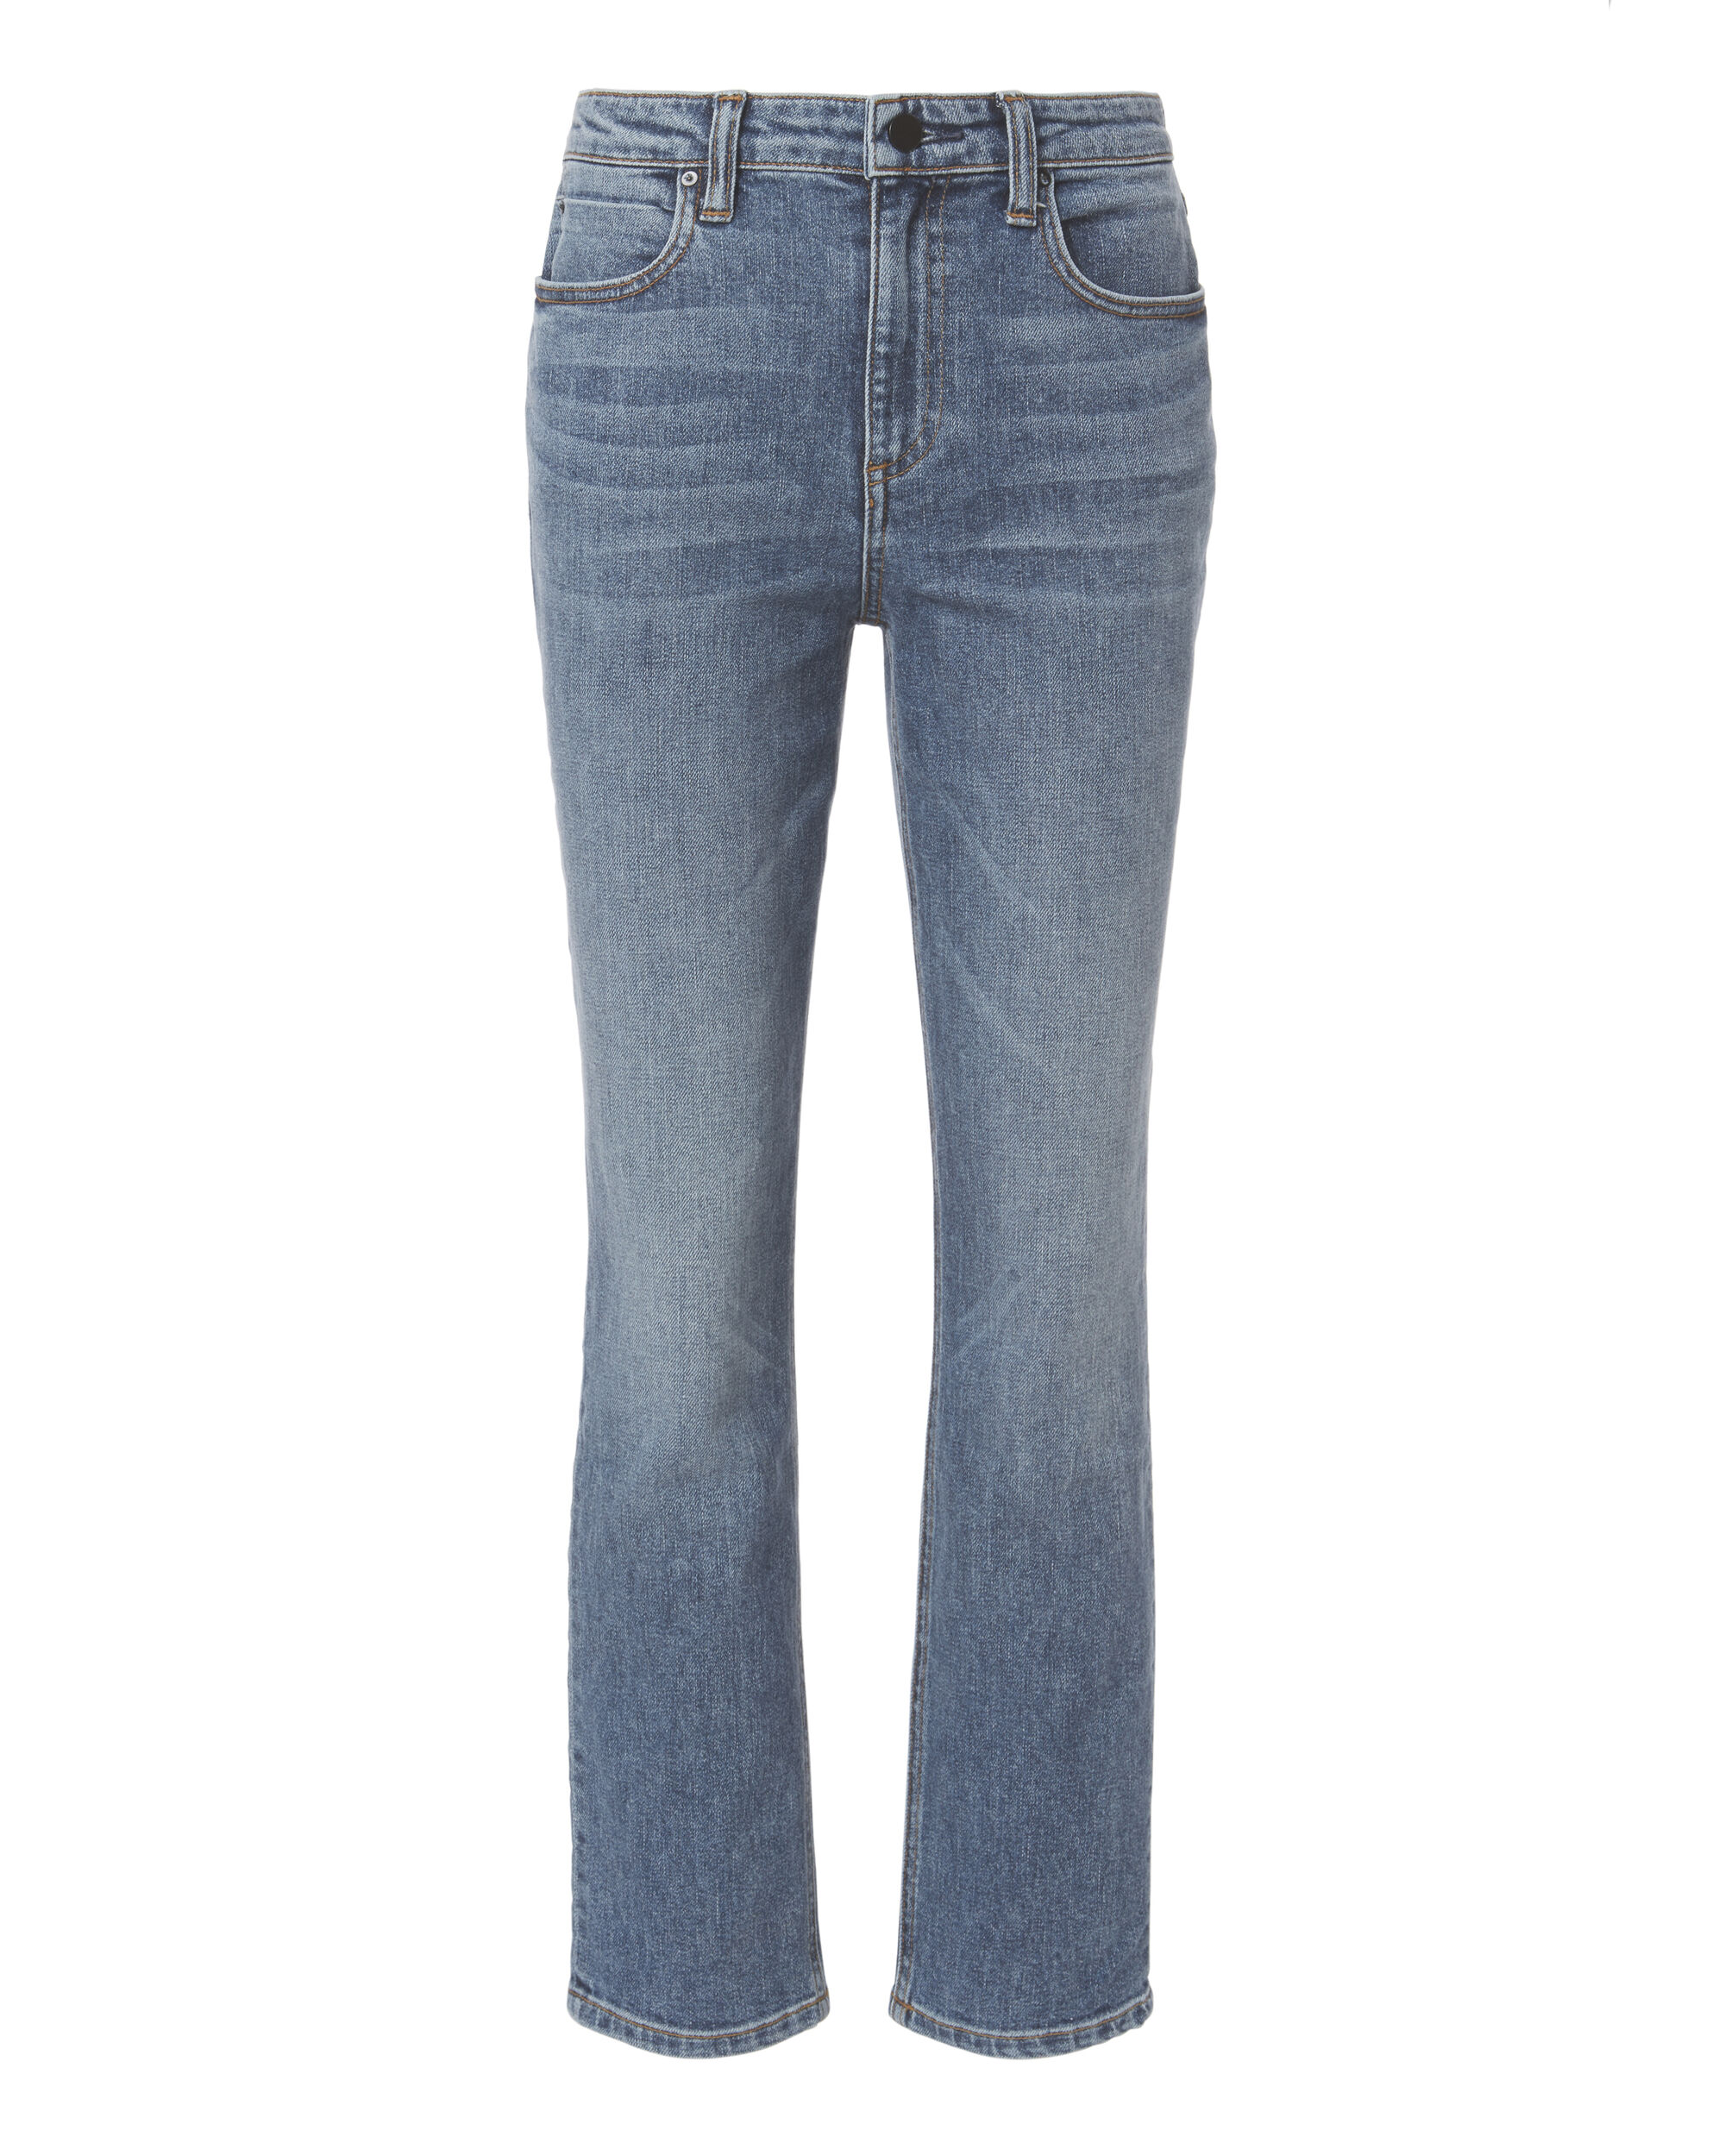 Indigo High-Rise Straight Jeans, BLUE, hi-res